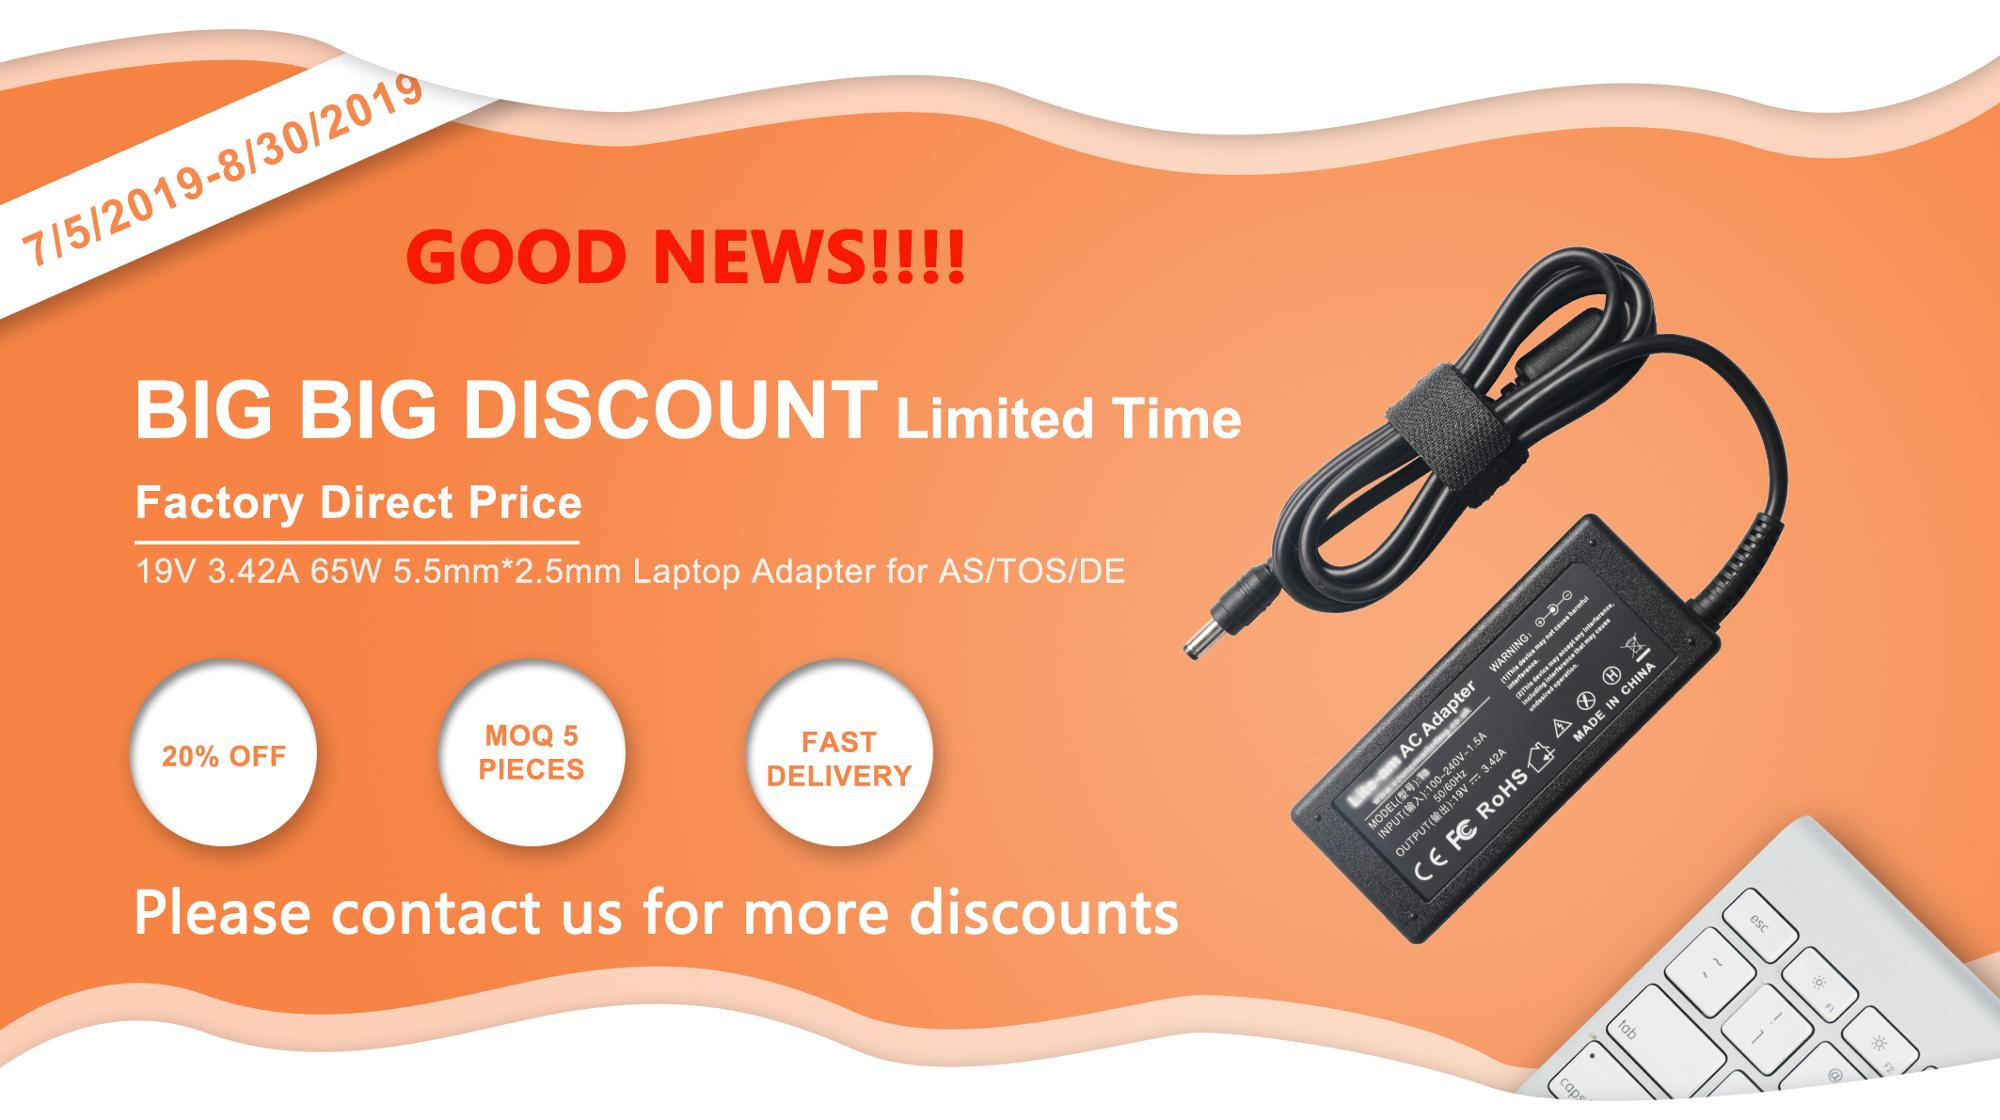 20V 3.25A Laptop AC Charger for Lenovo with USB Pin 65W Laptop Charger